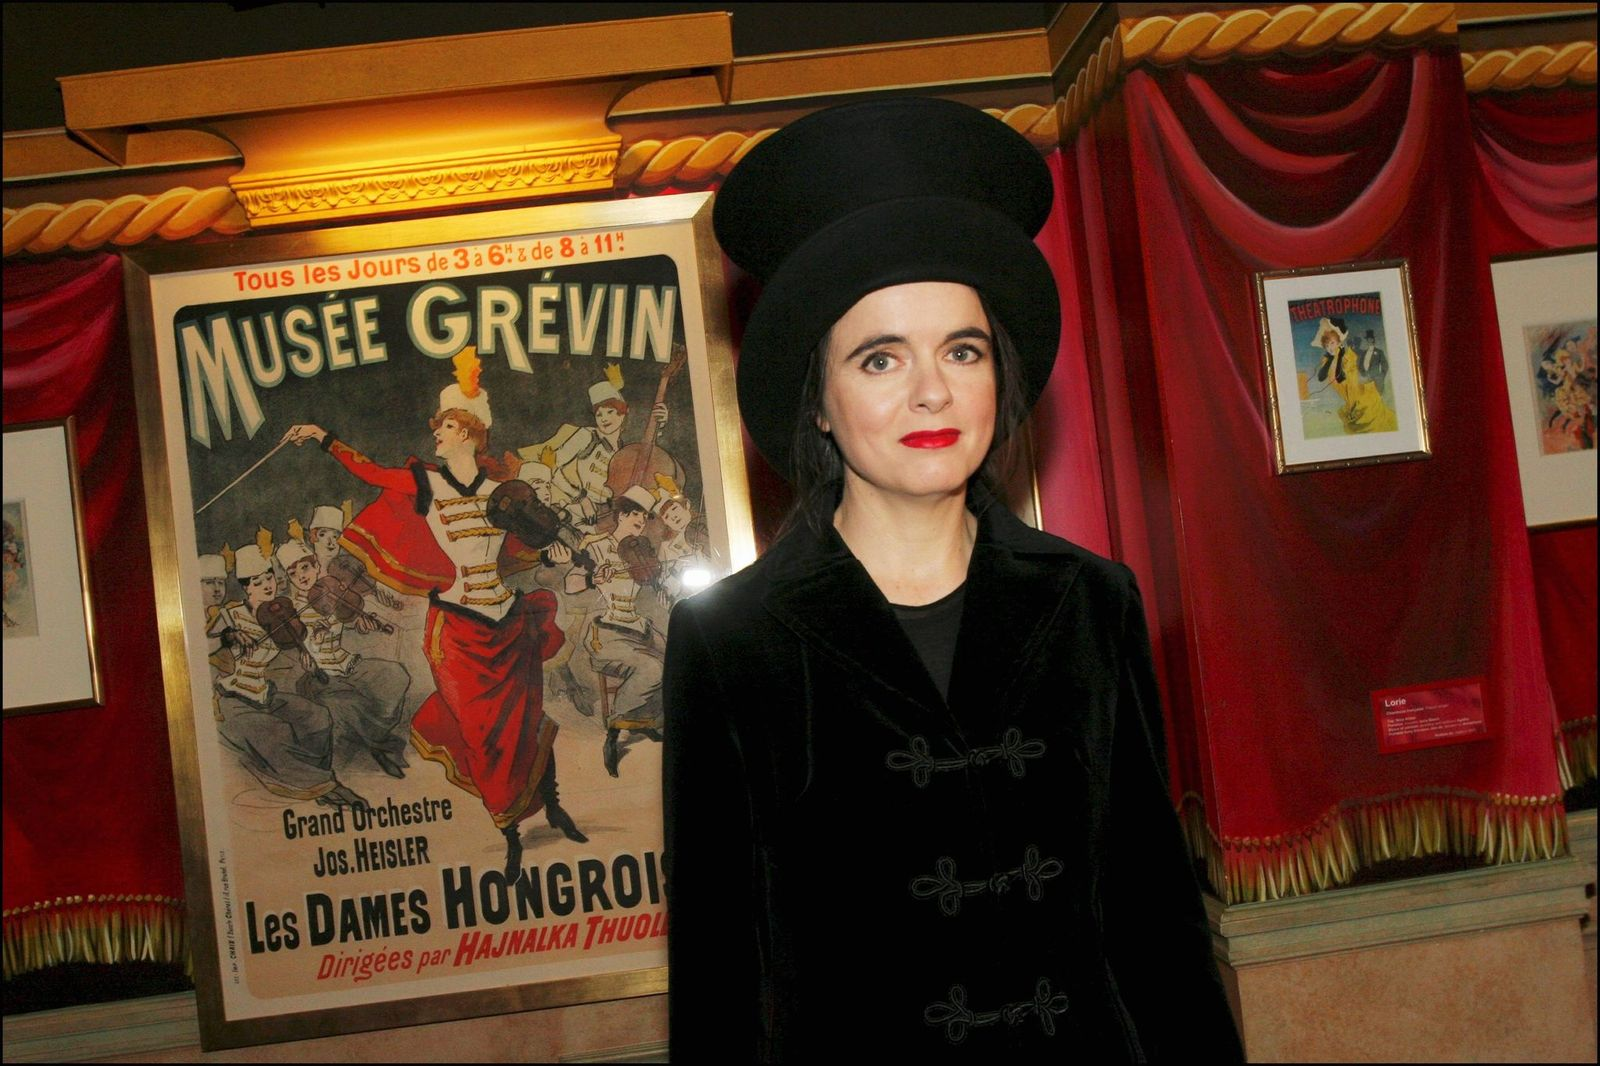 Amélie Nothomb et son mannequin de cire au Musée Grévin à Paris, France, le 04 octobre 2005. | Photo : Getty Images